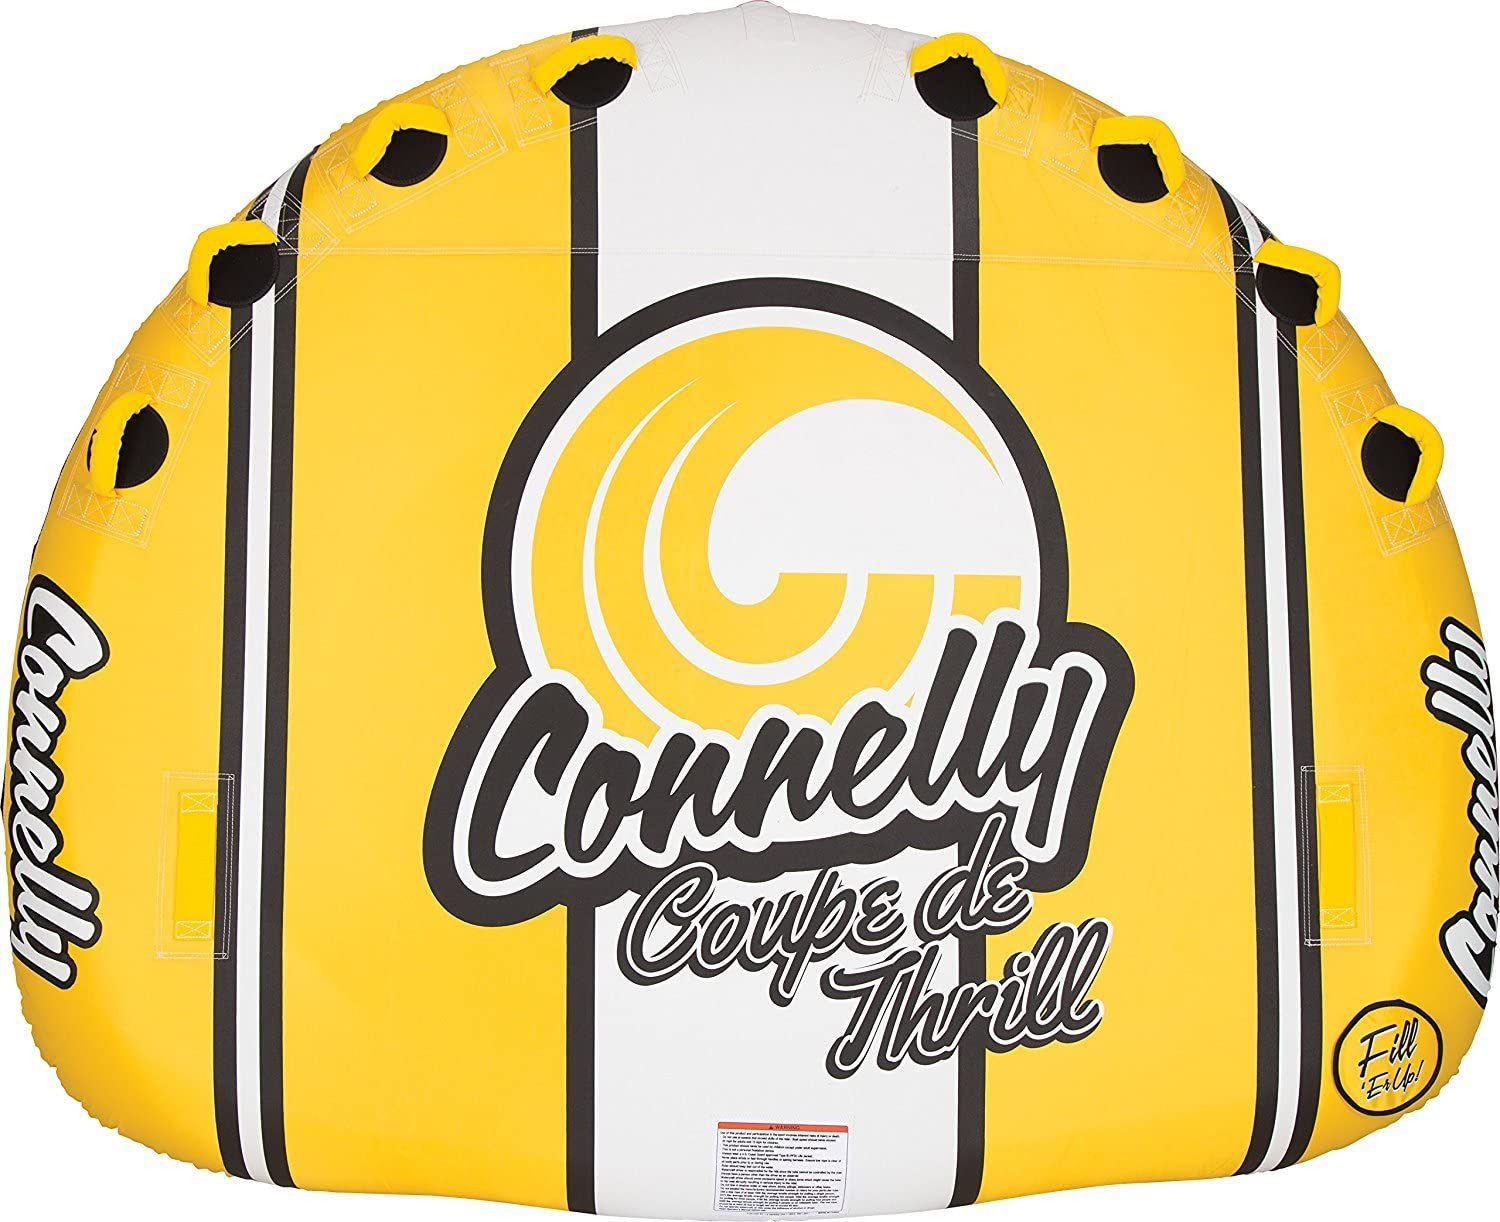 Connelly Classic Deck Style Towable Tube 4 Riders Coupe De Thrill Inflatable Raft [並行輸入品]